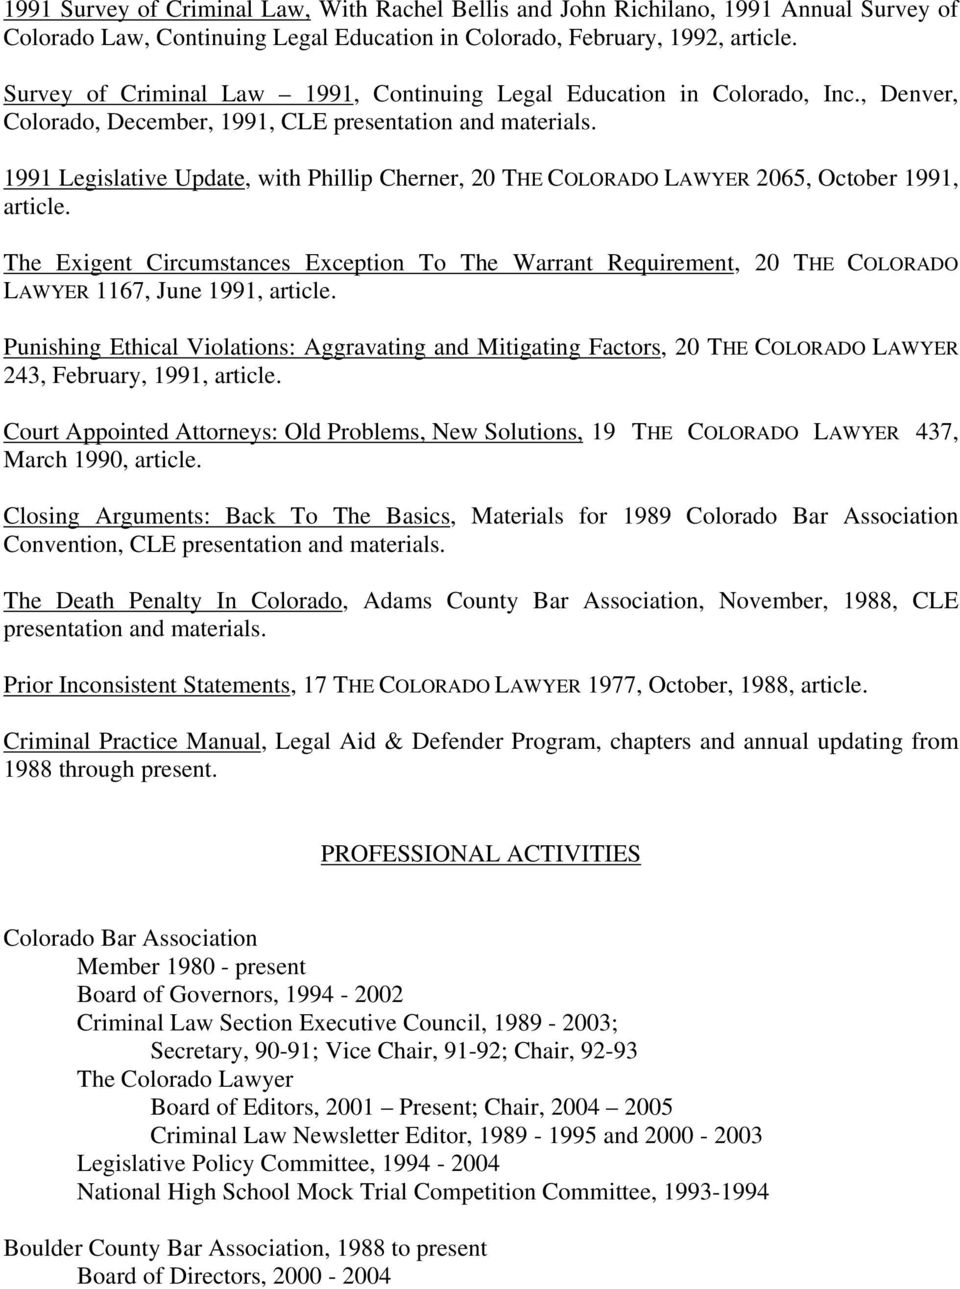 1991 Legislative Update, with Phillip Cherner, 20 THE COLORADO LAWYER 2065, October 1991, article.